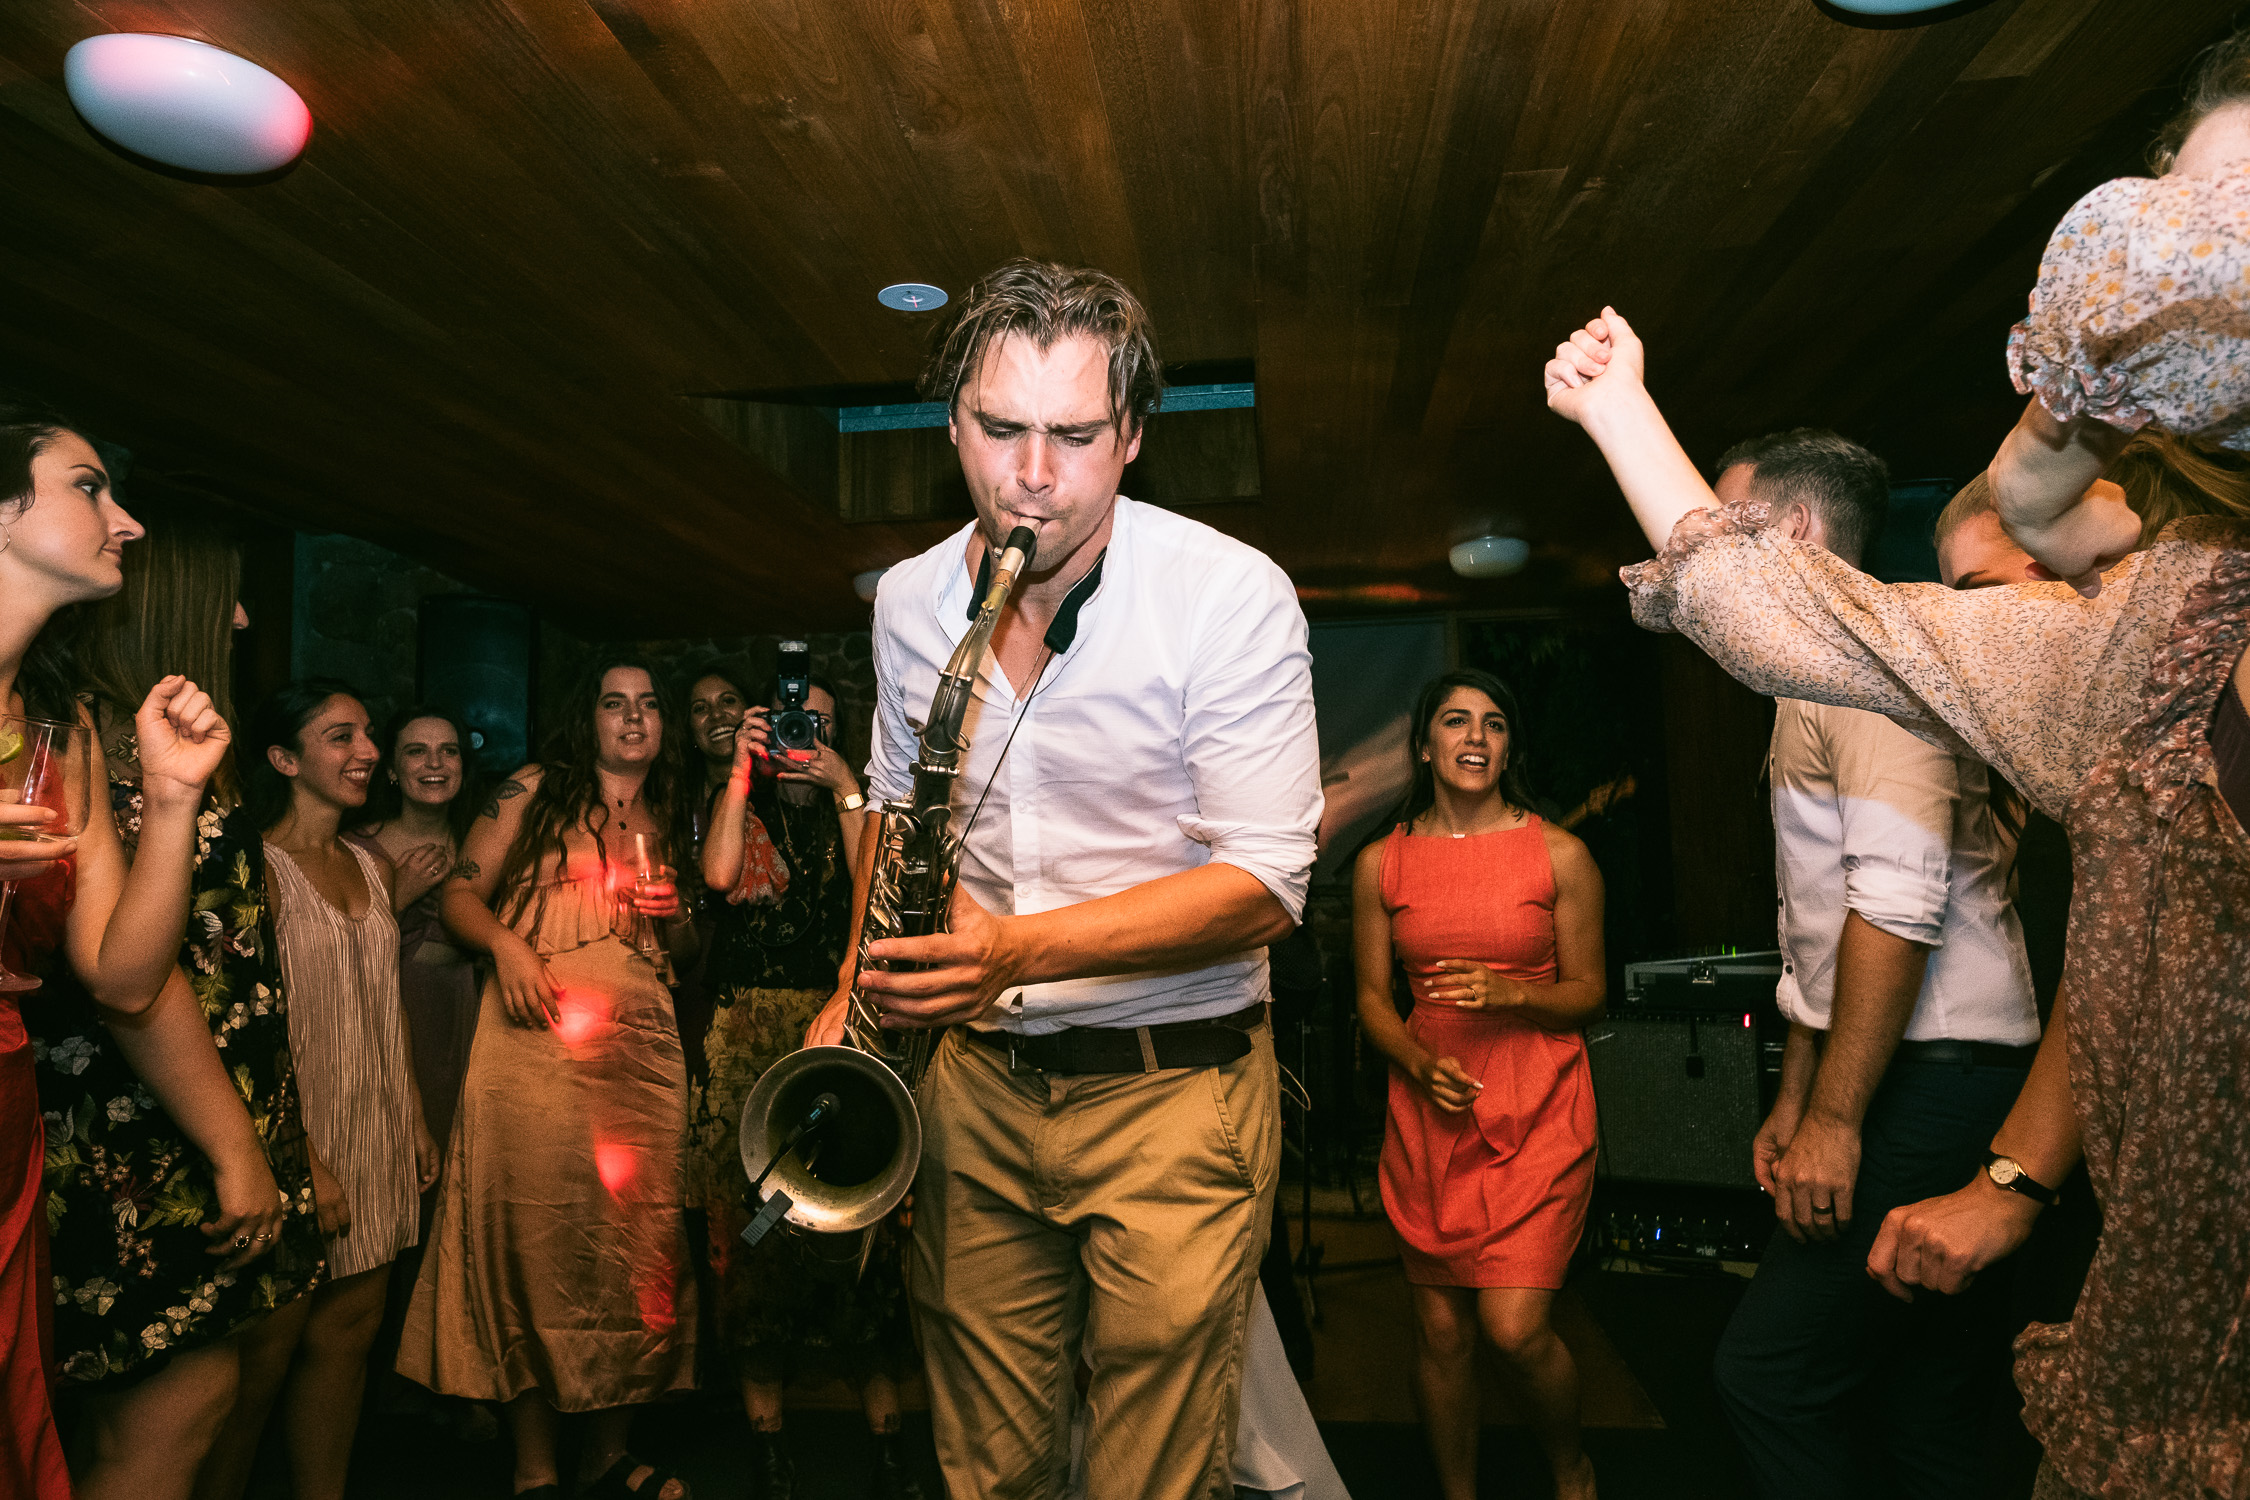 Melbourne Sunnystones Camp Wedding - band saxophone player on dancefloor